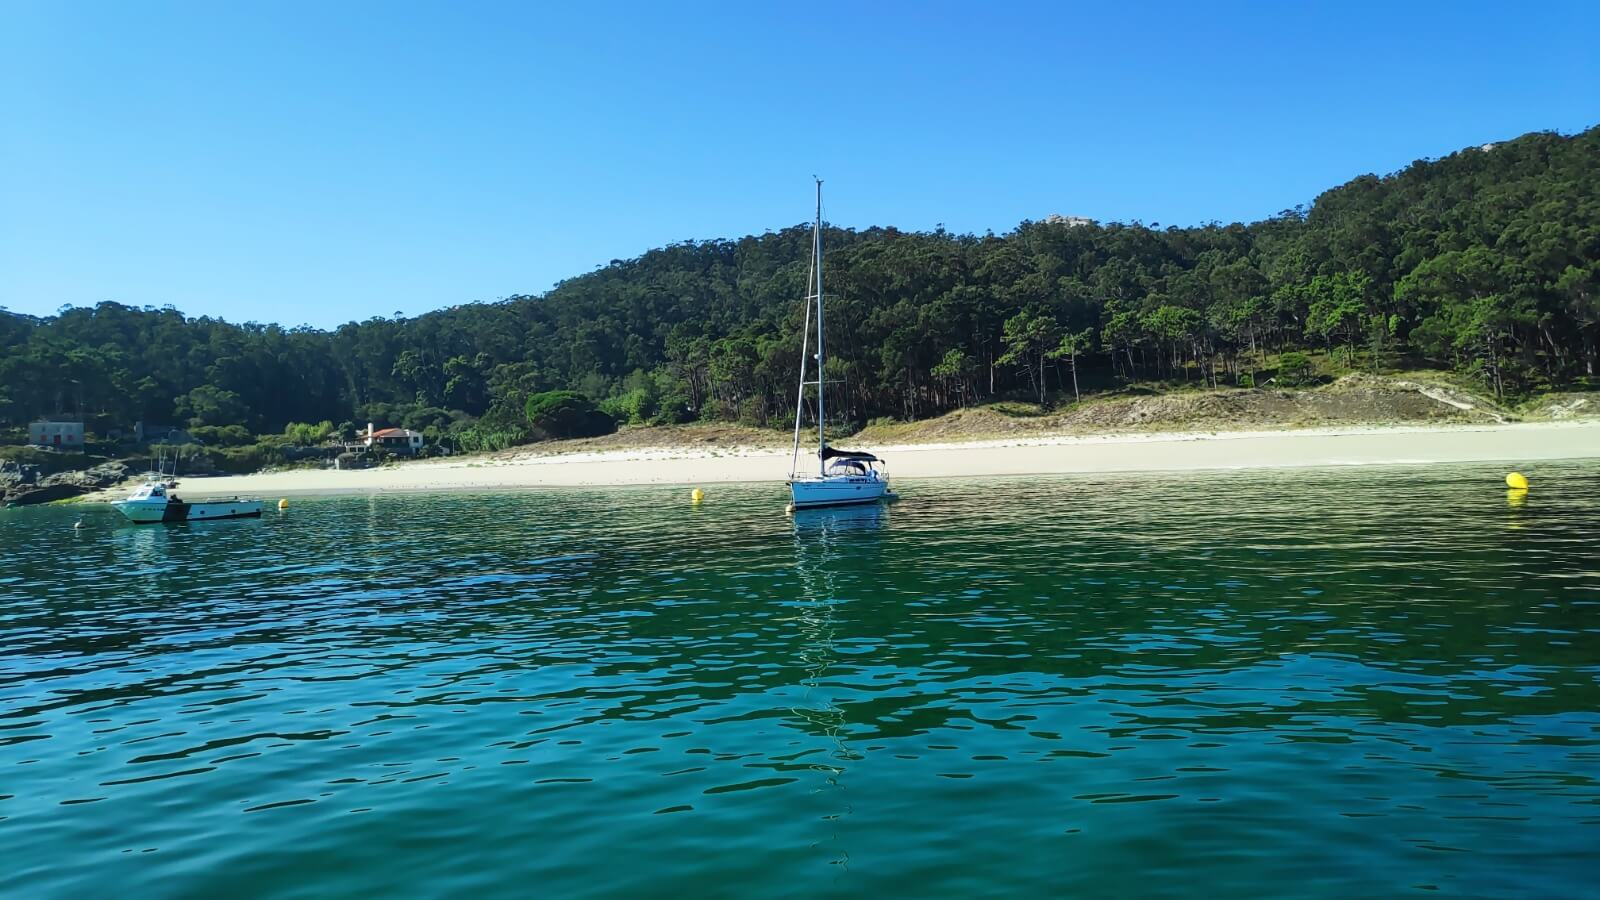 What to see and do in Northern Spain: top 6 ideas - 4. Cies Islands Sailing ¡